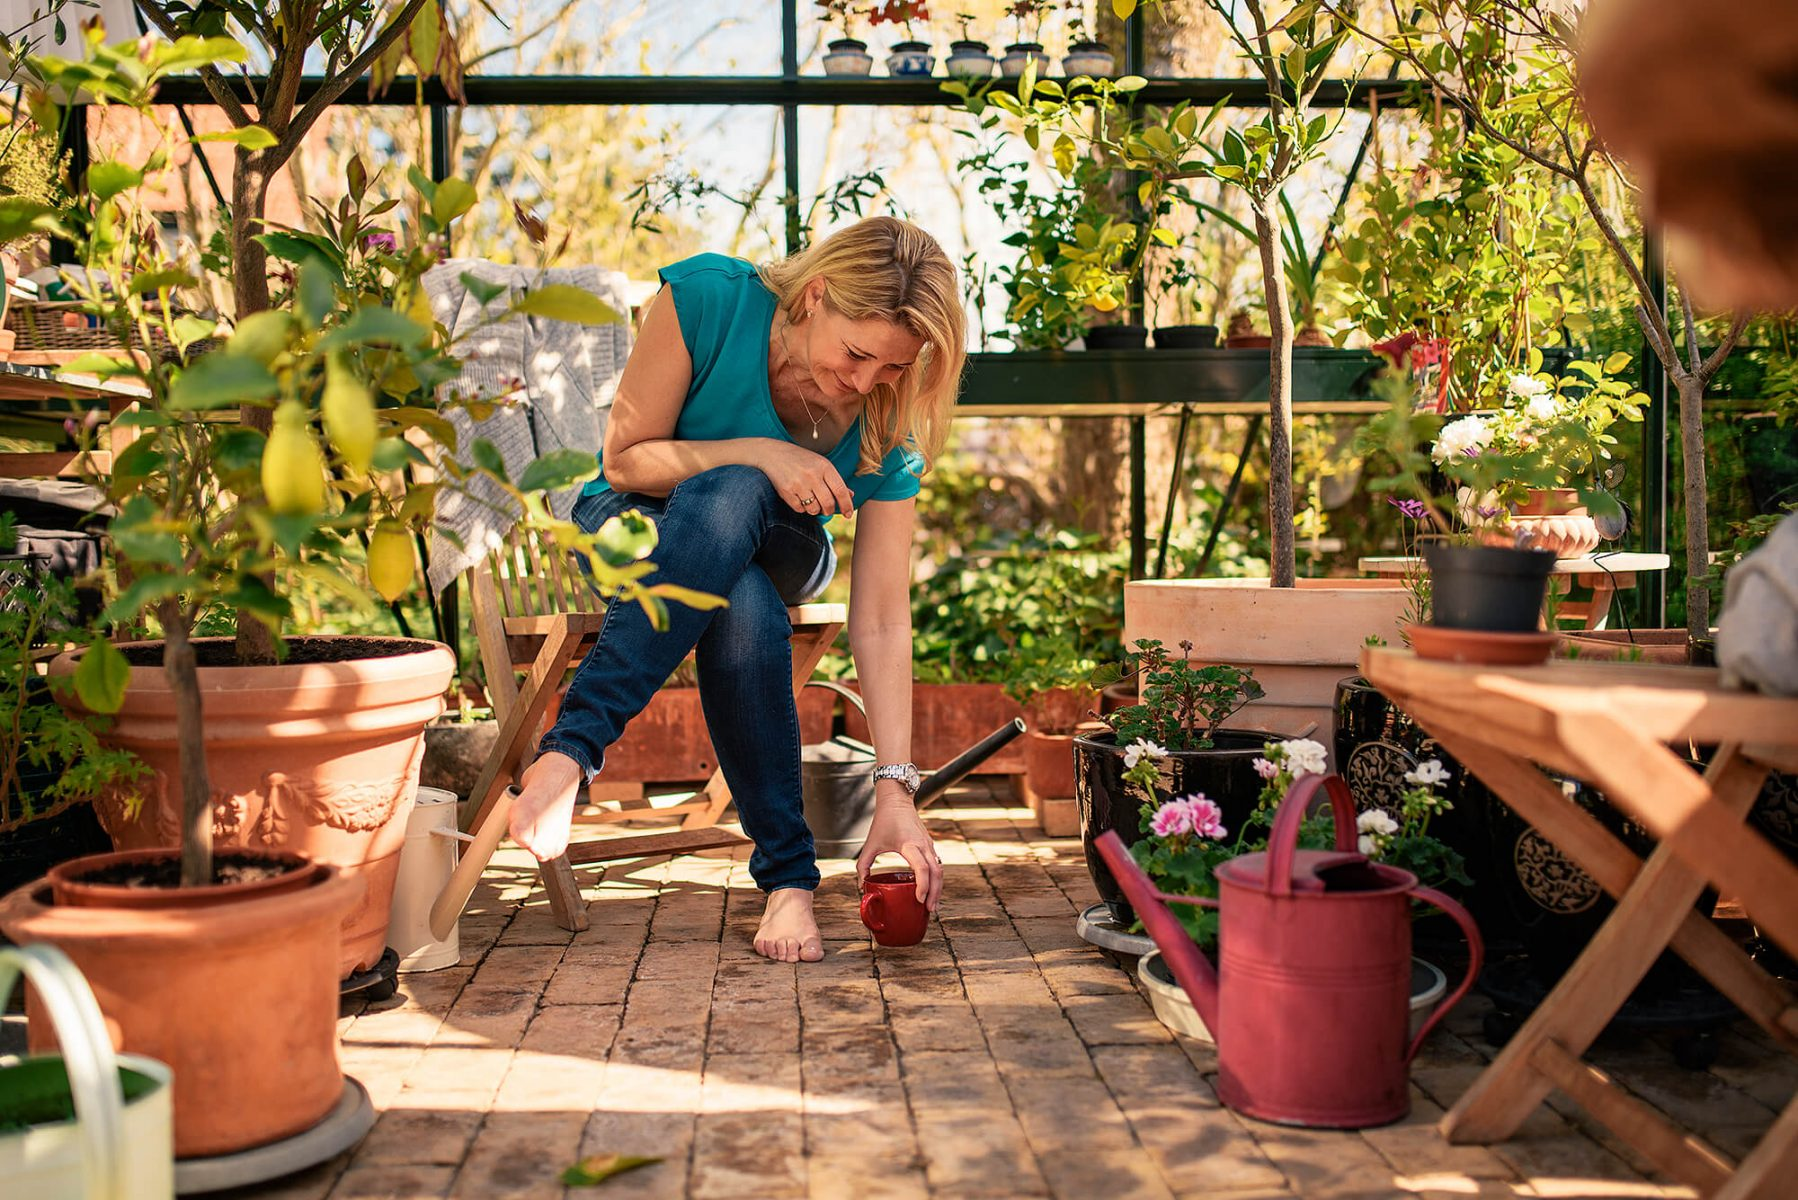 Woman enjoying a good coffee in her orangery. Lovely summer light. Colorful and lots of flowers.